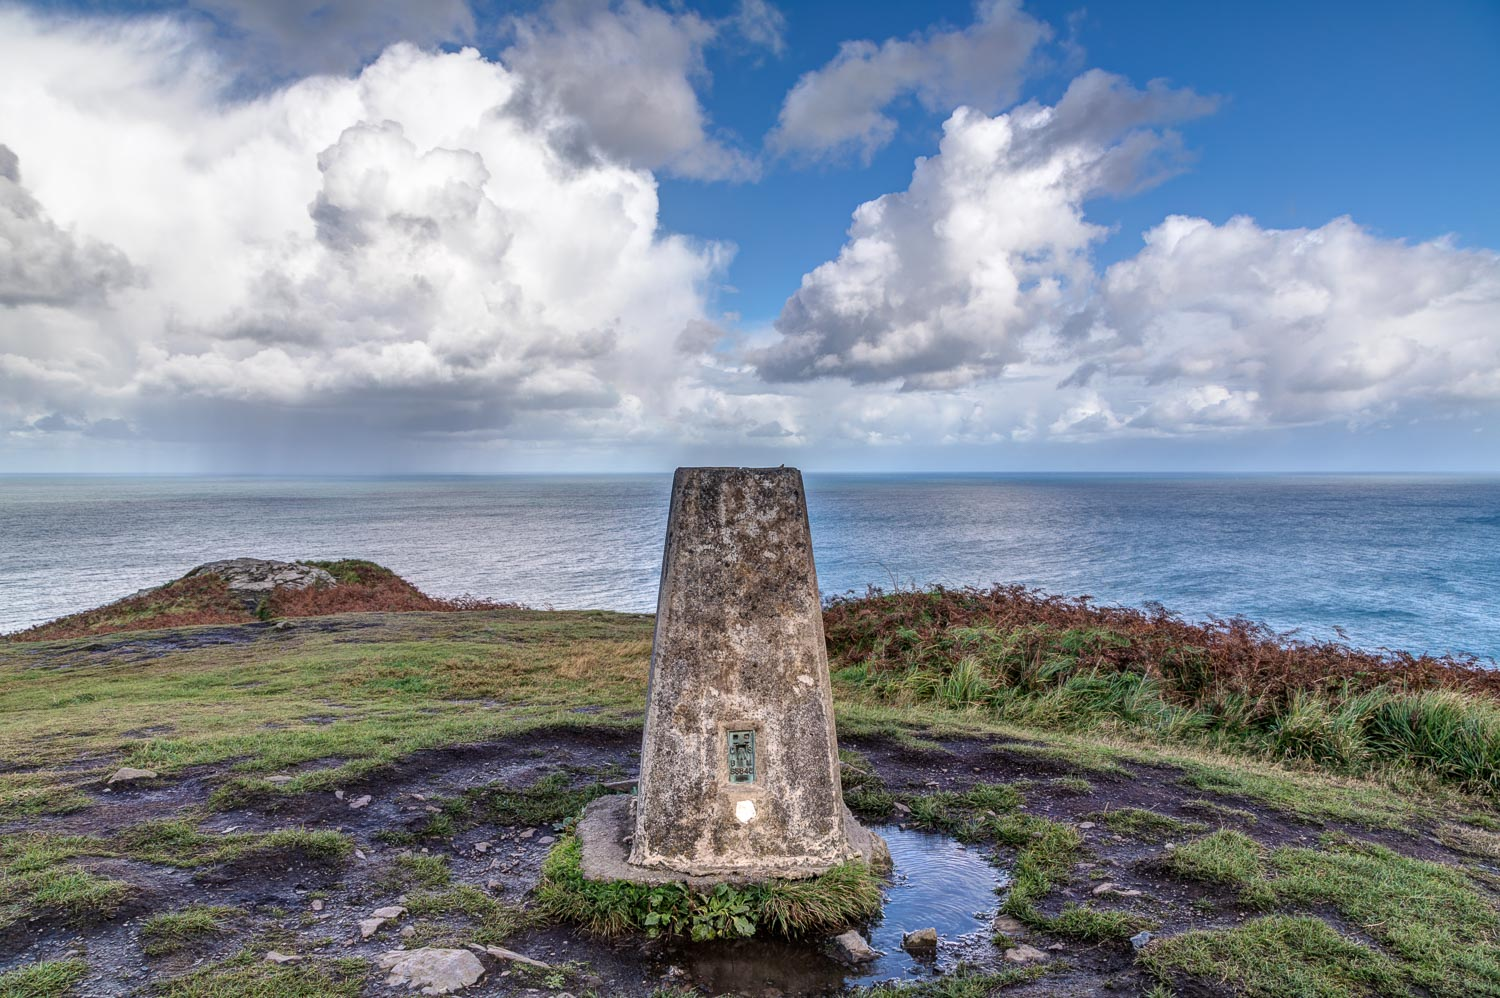 trig column, Pen y Fan, Dinas Island